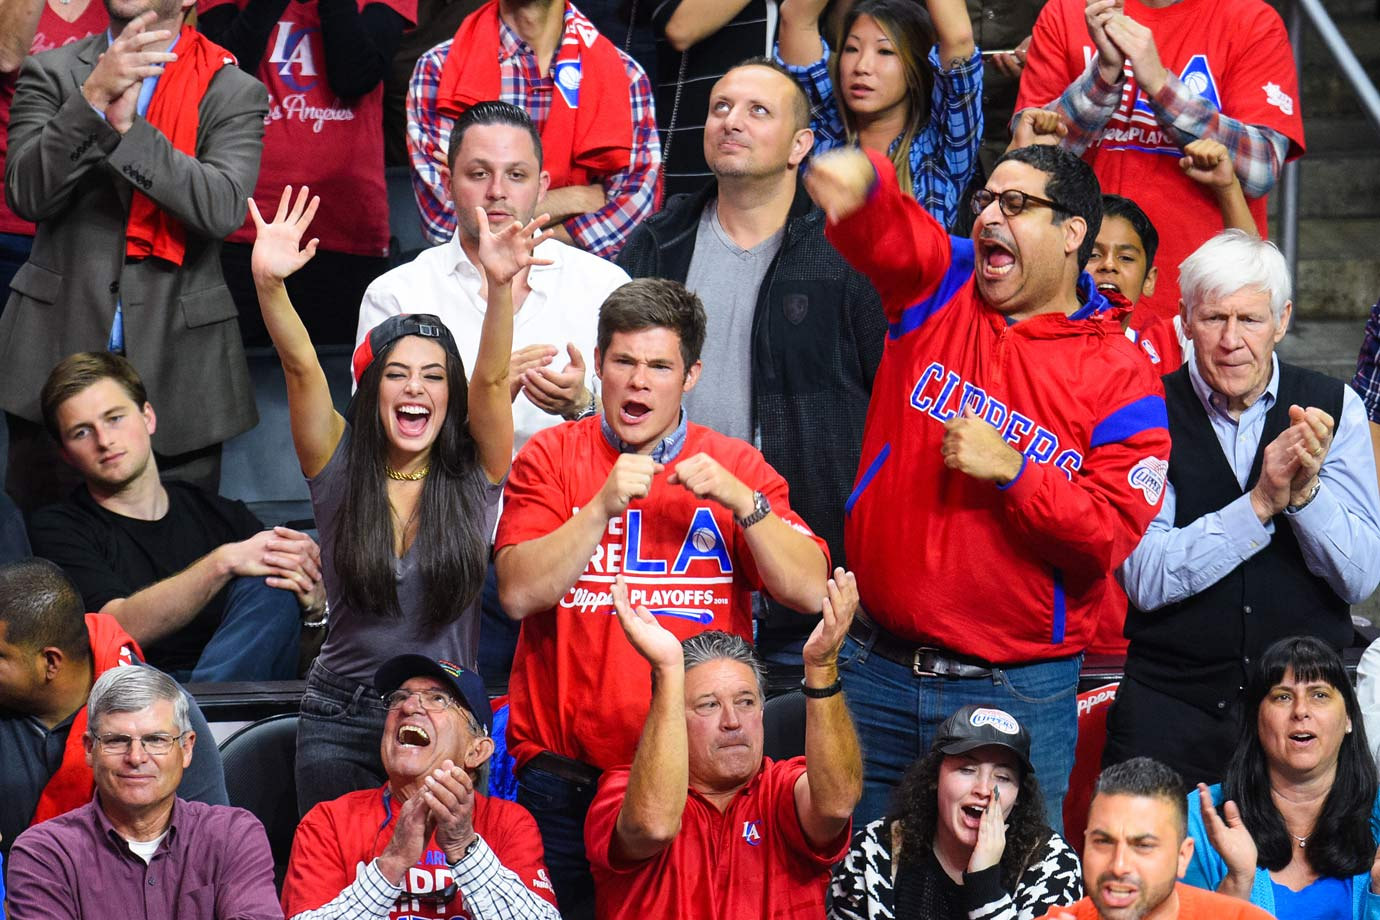 April 22, 2015: Los Angeles Clippers vs. San Antonio Spurs at Staples Center in Los Angeles — Western Conference Quarterfinals, Game 2